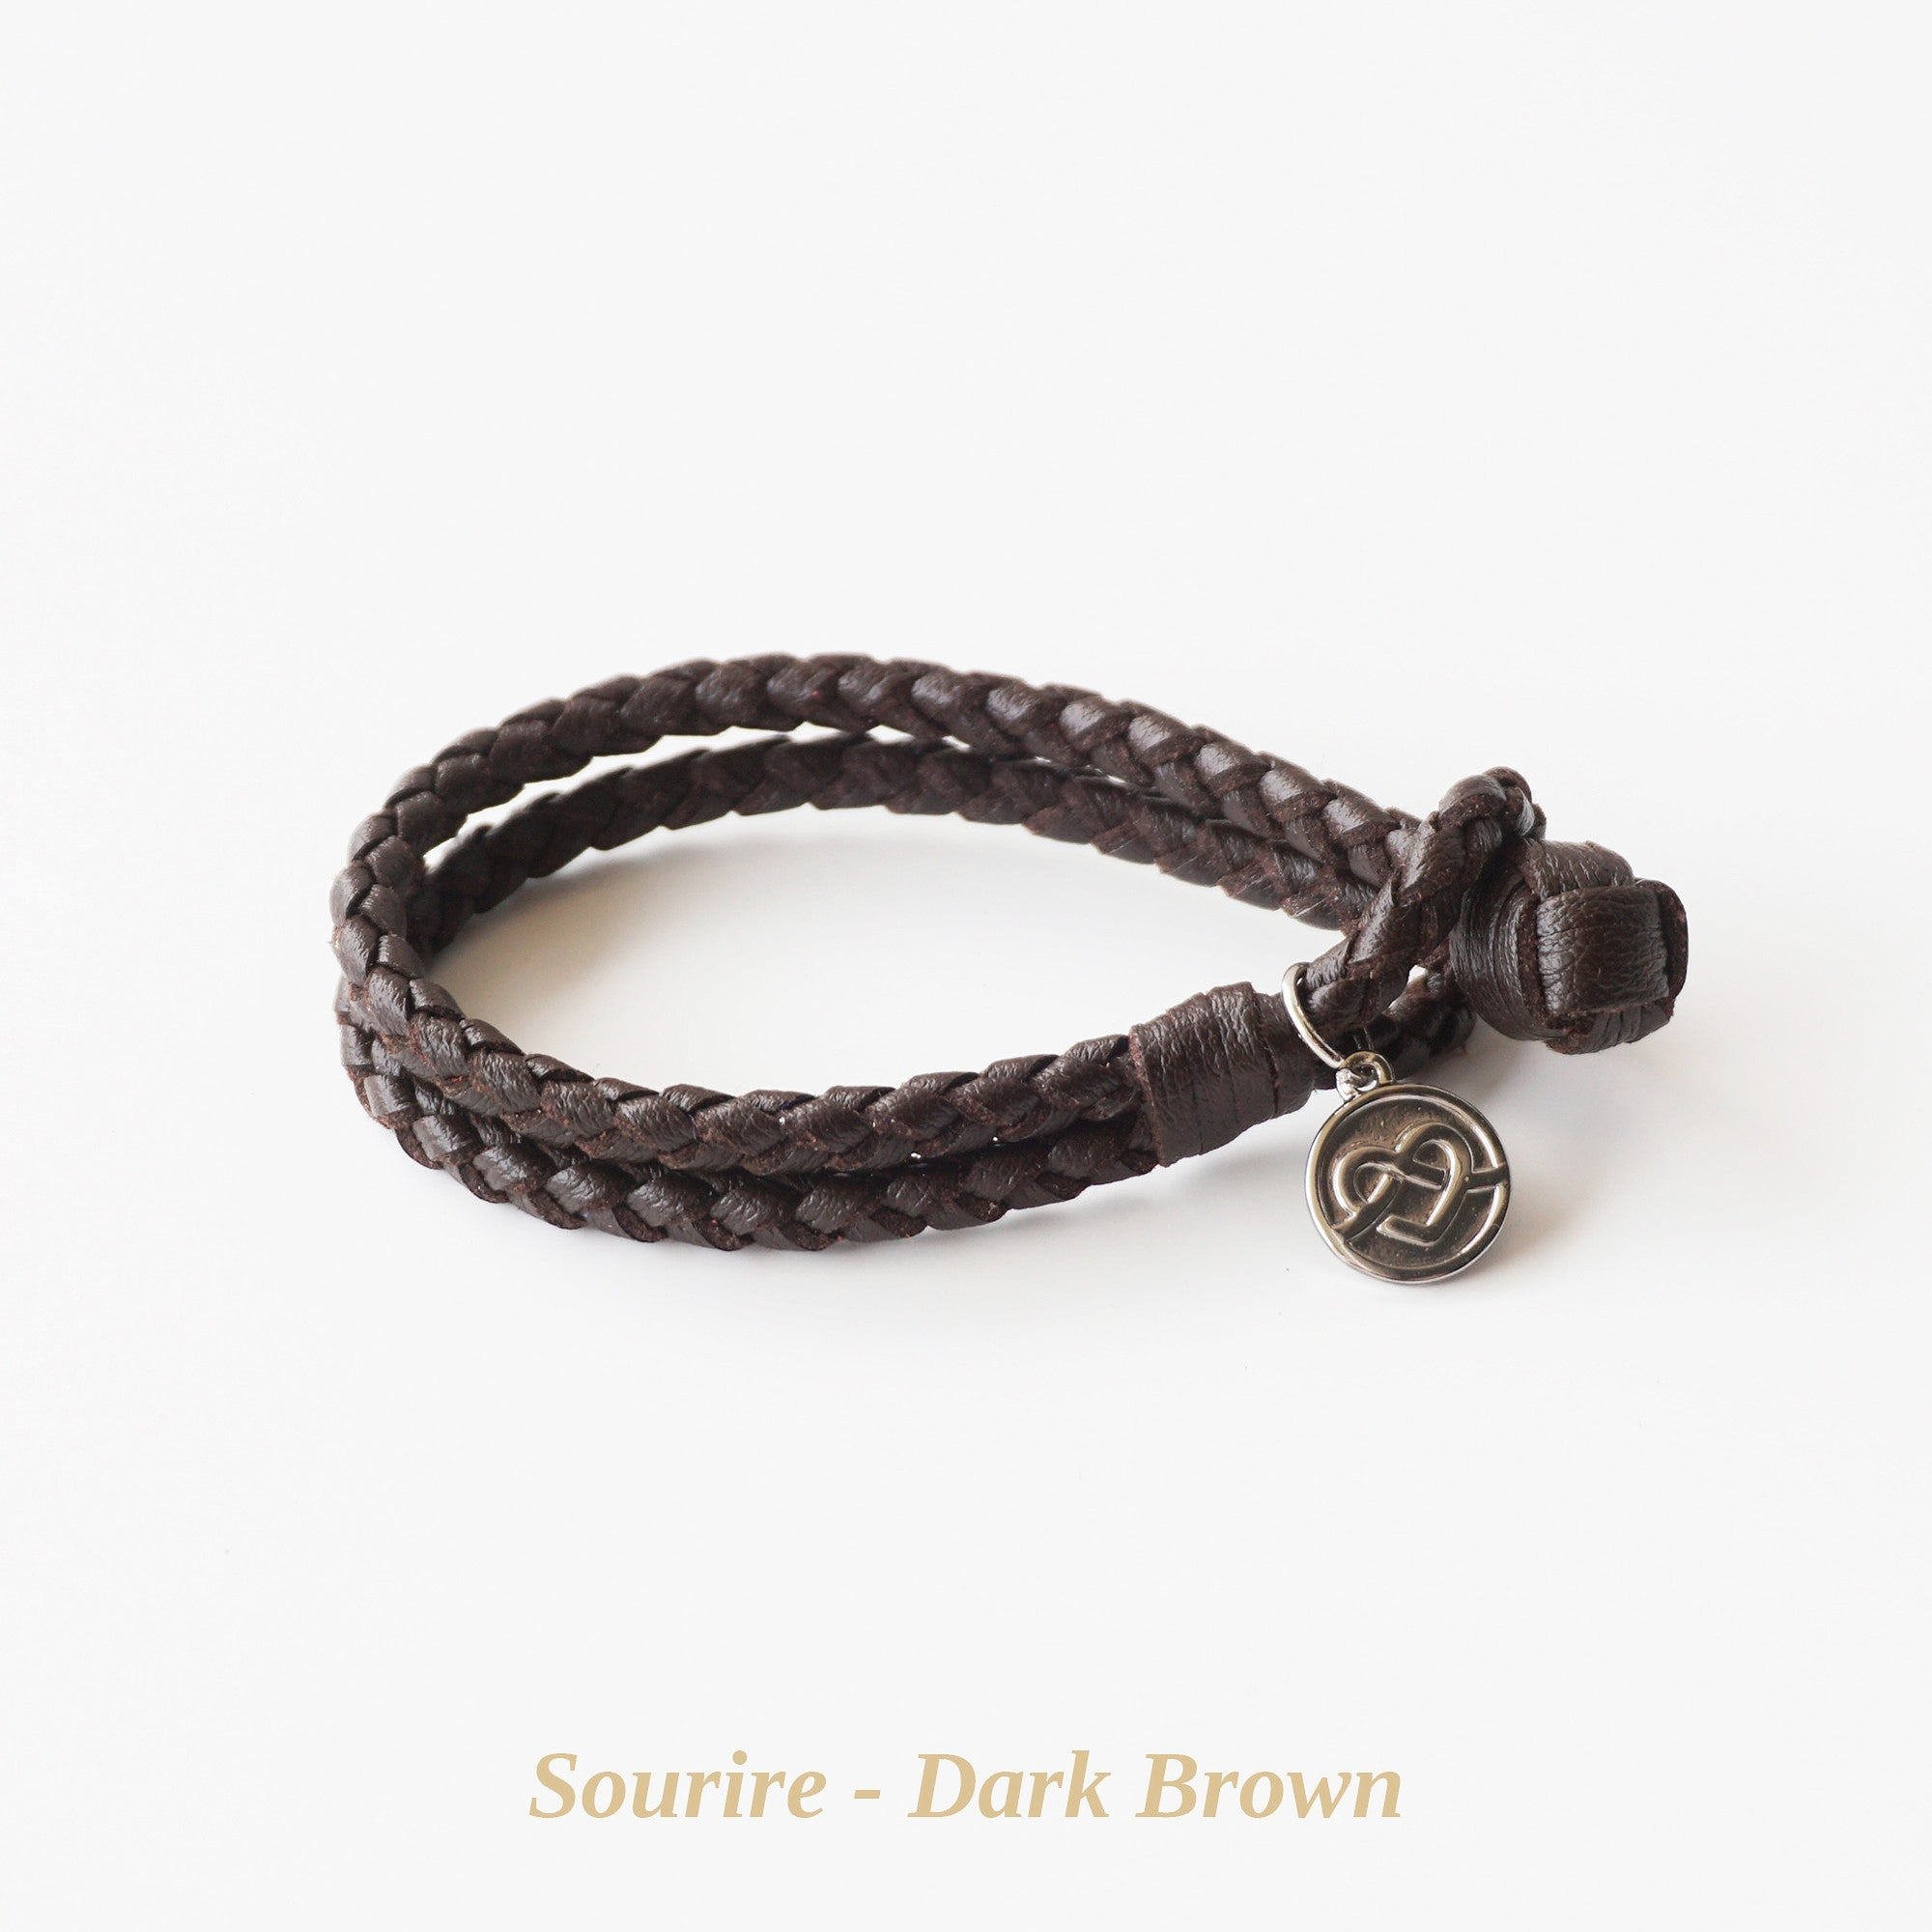 Dark Brown Sourire Bracelet